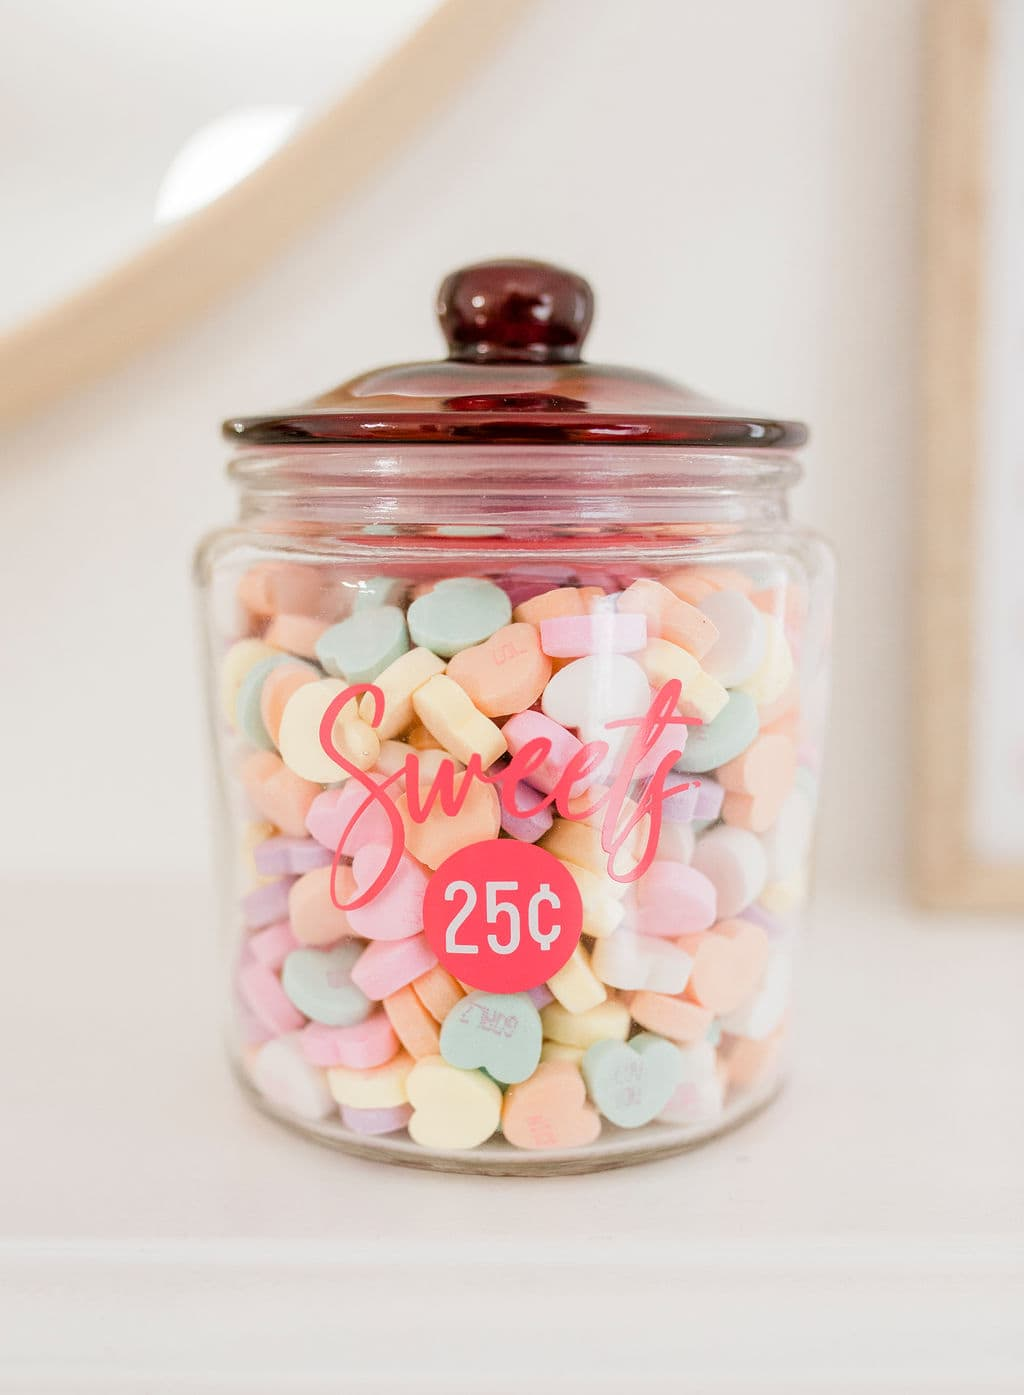 sweets in jar